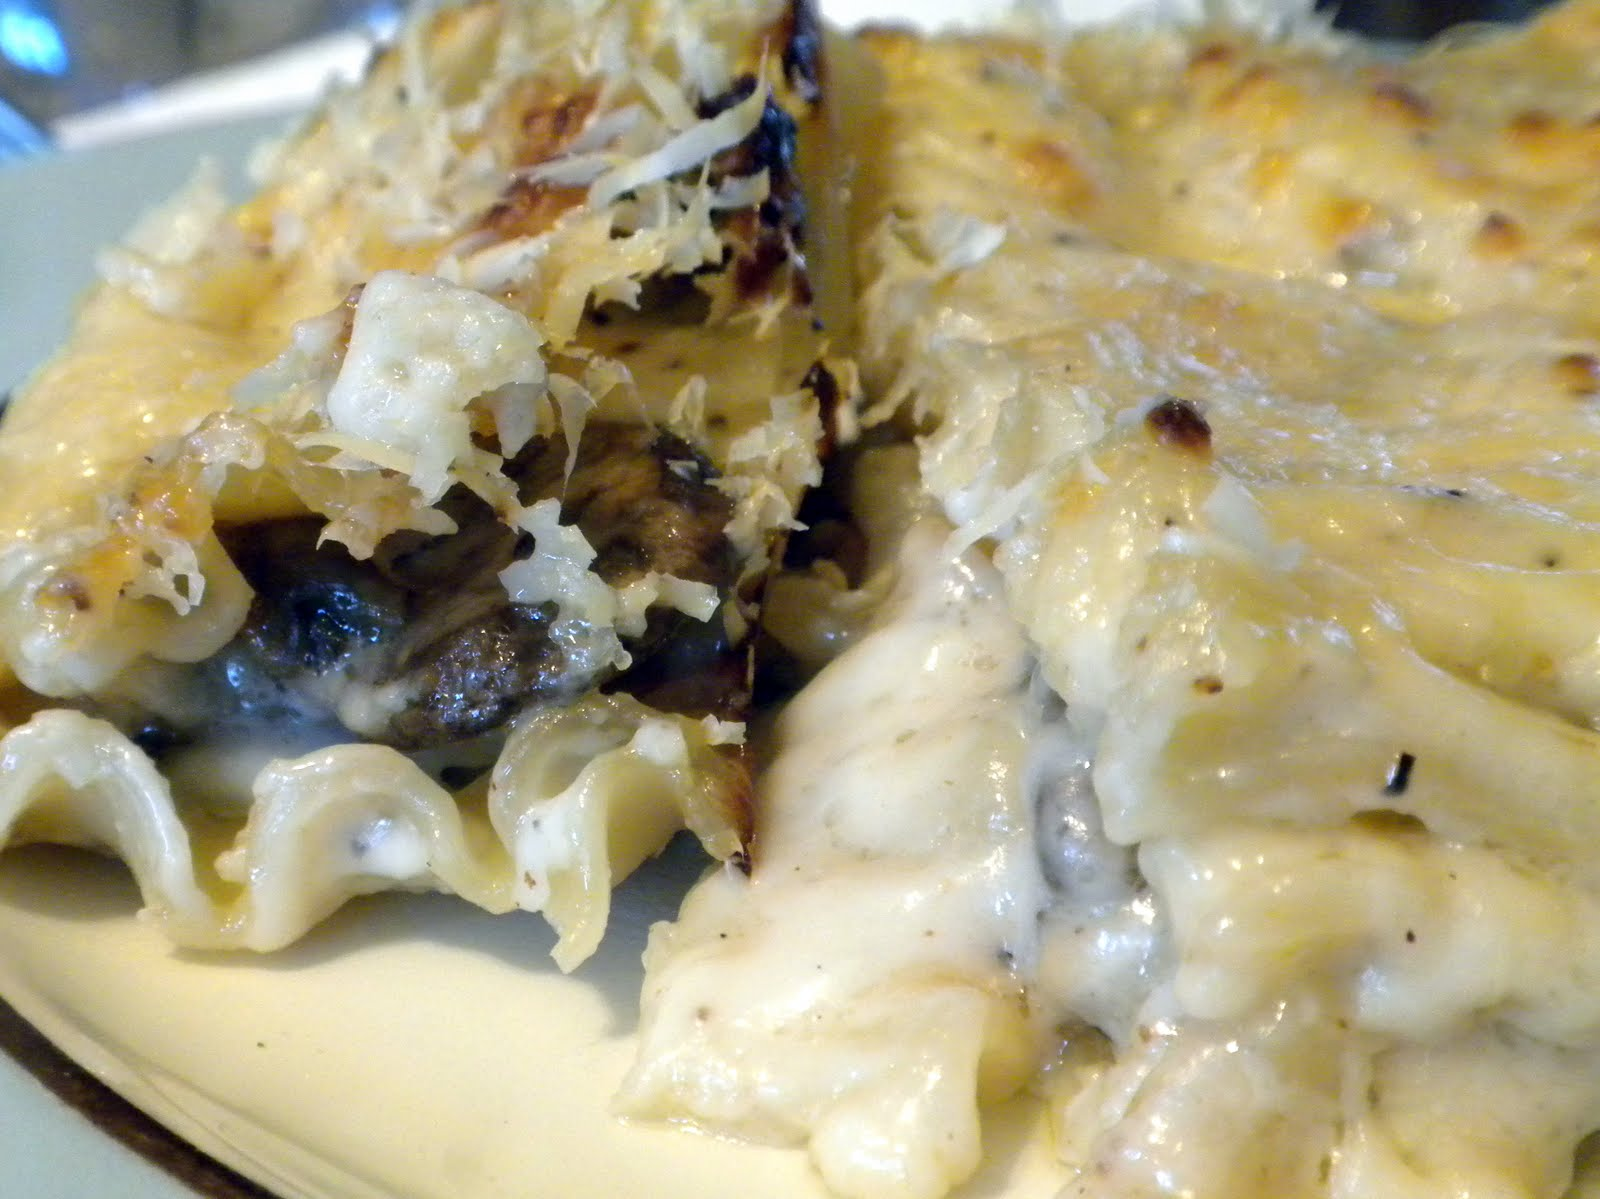 So When I Saw Ina Garten Make This Wild Mushroom Lasagna That Incorporated All